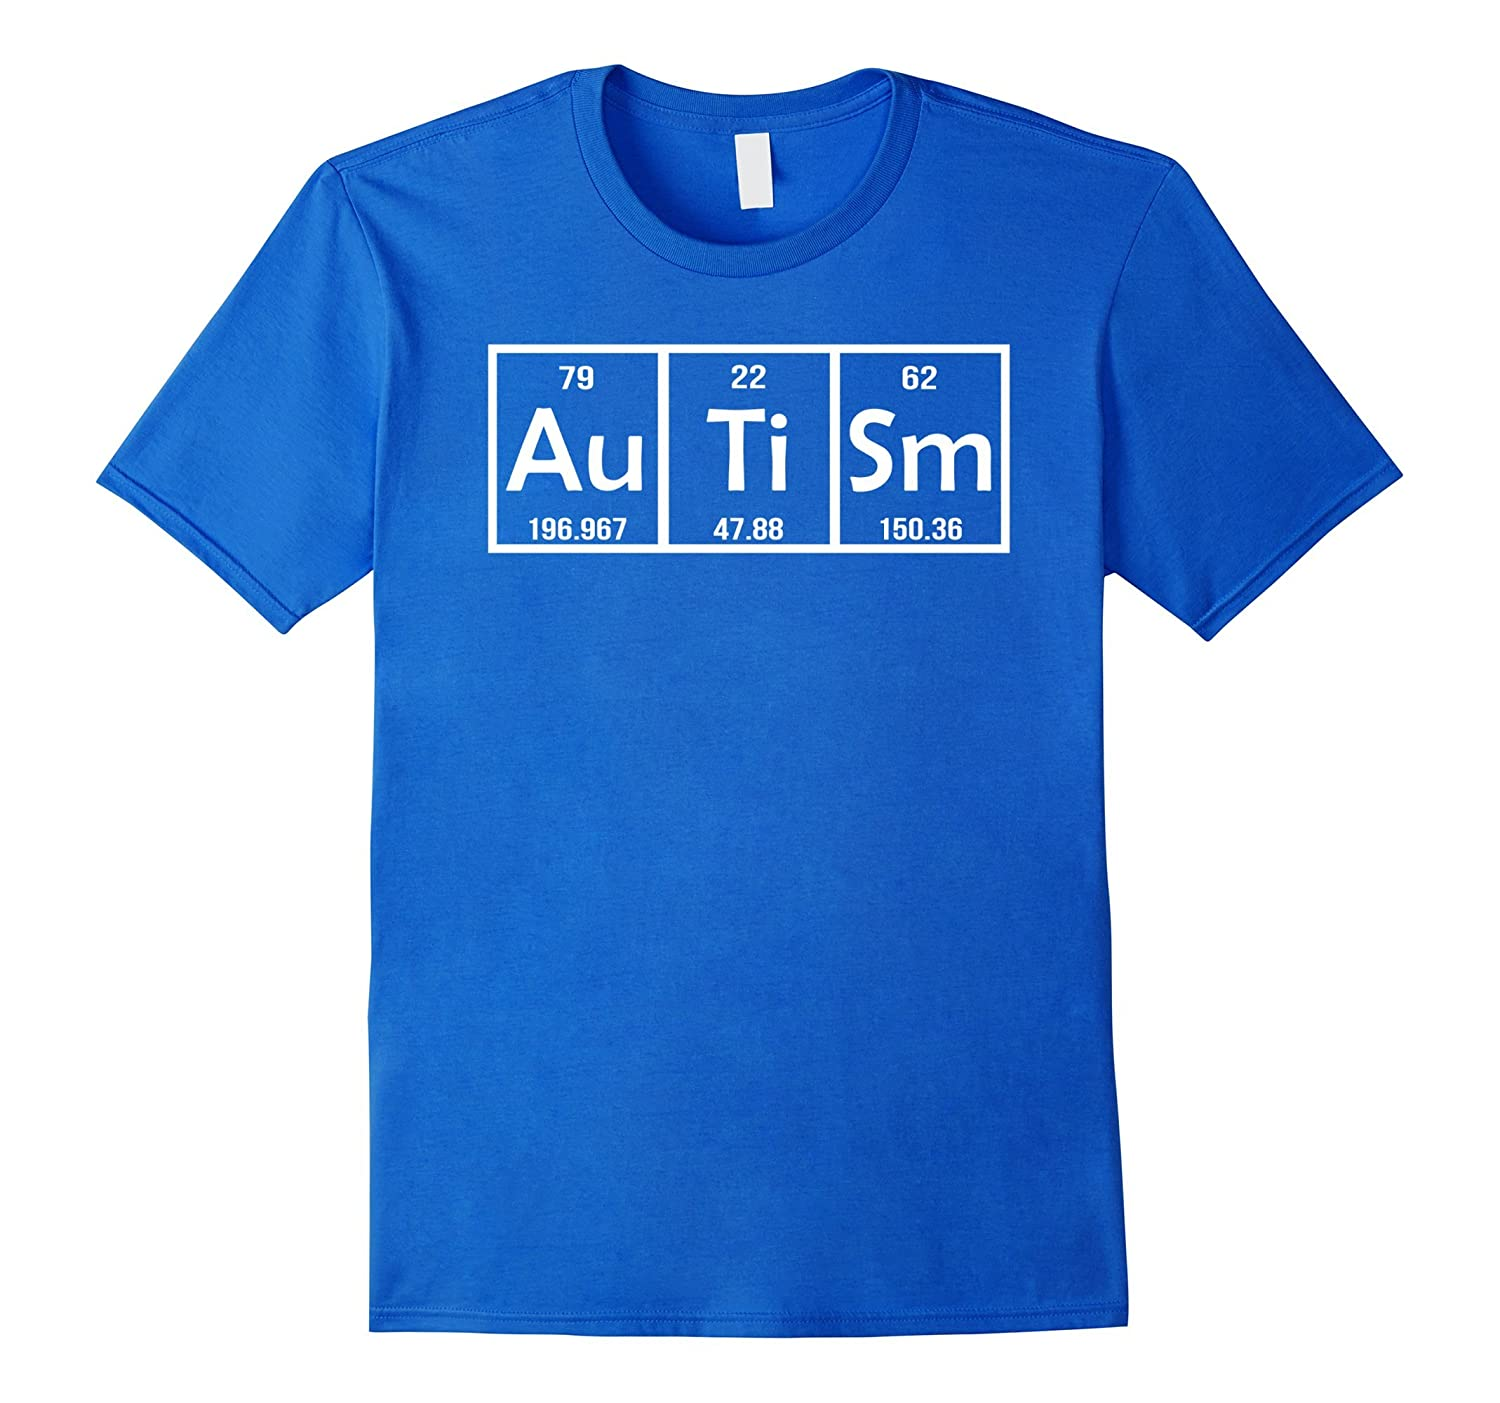 Autism gifts for adults funny periodic table t shirt goatstee autism gifts for adults funny periodic table t shirt gamestrikefo Image collections